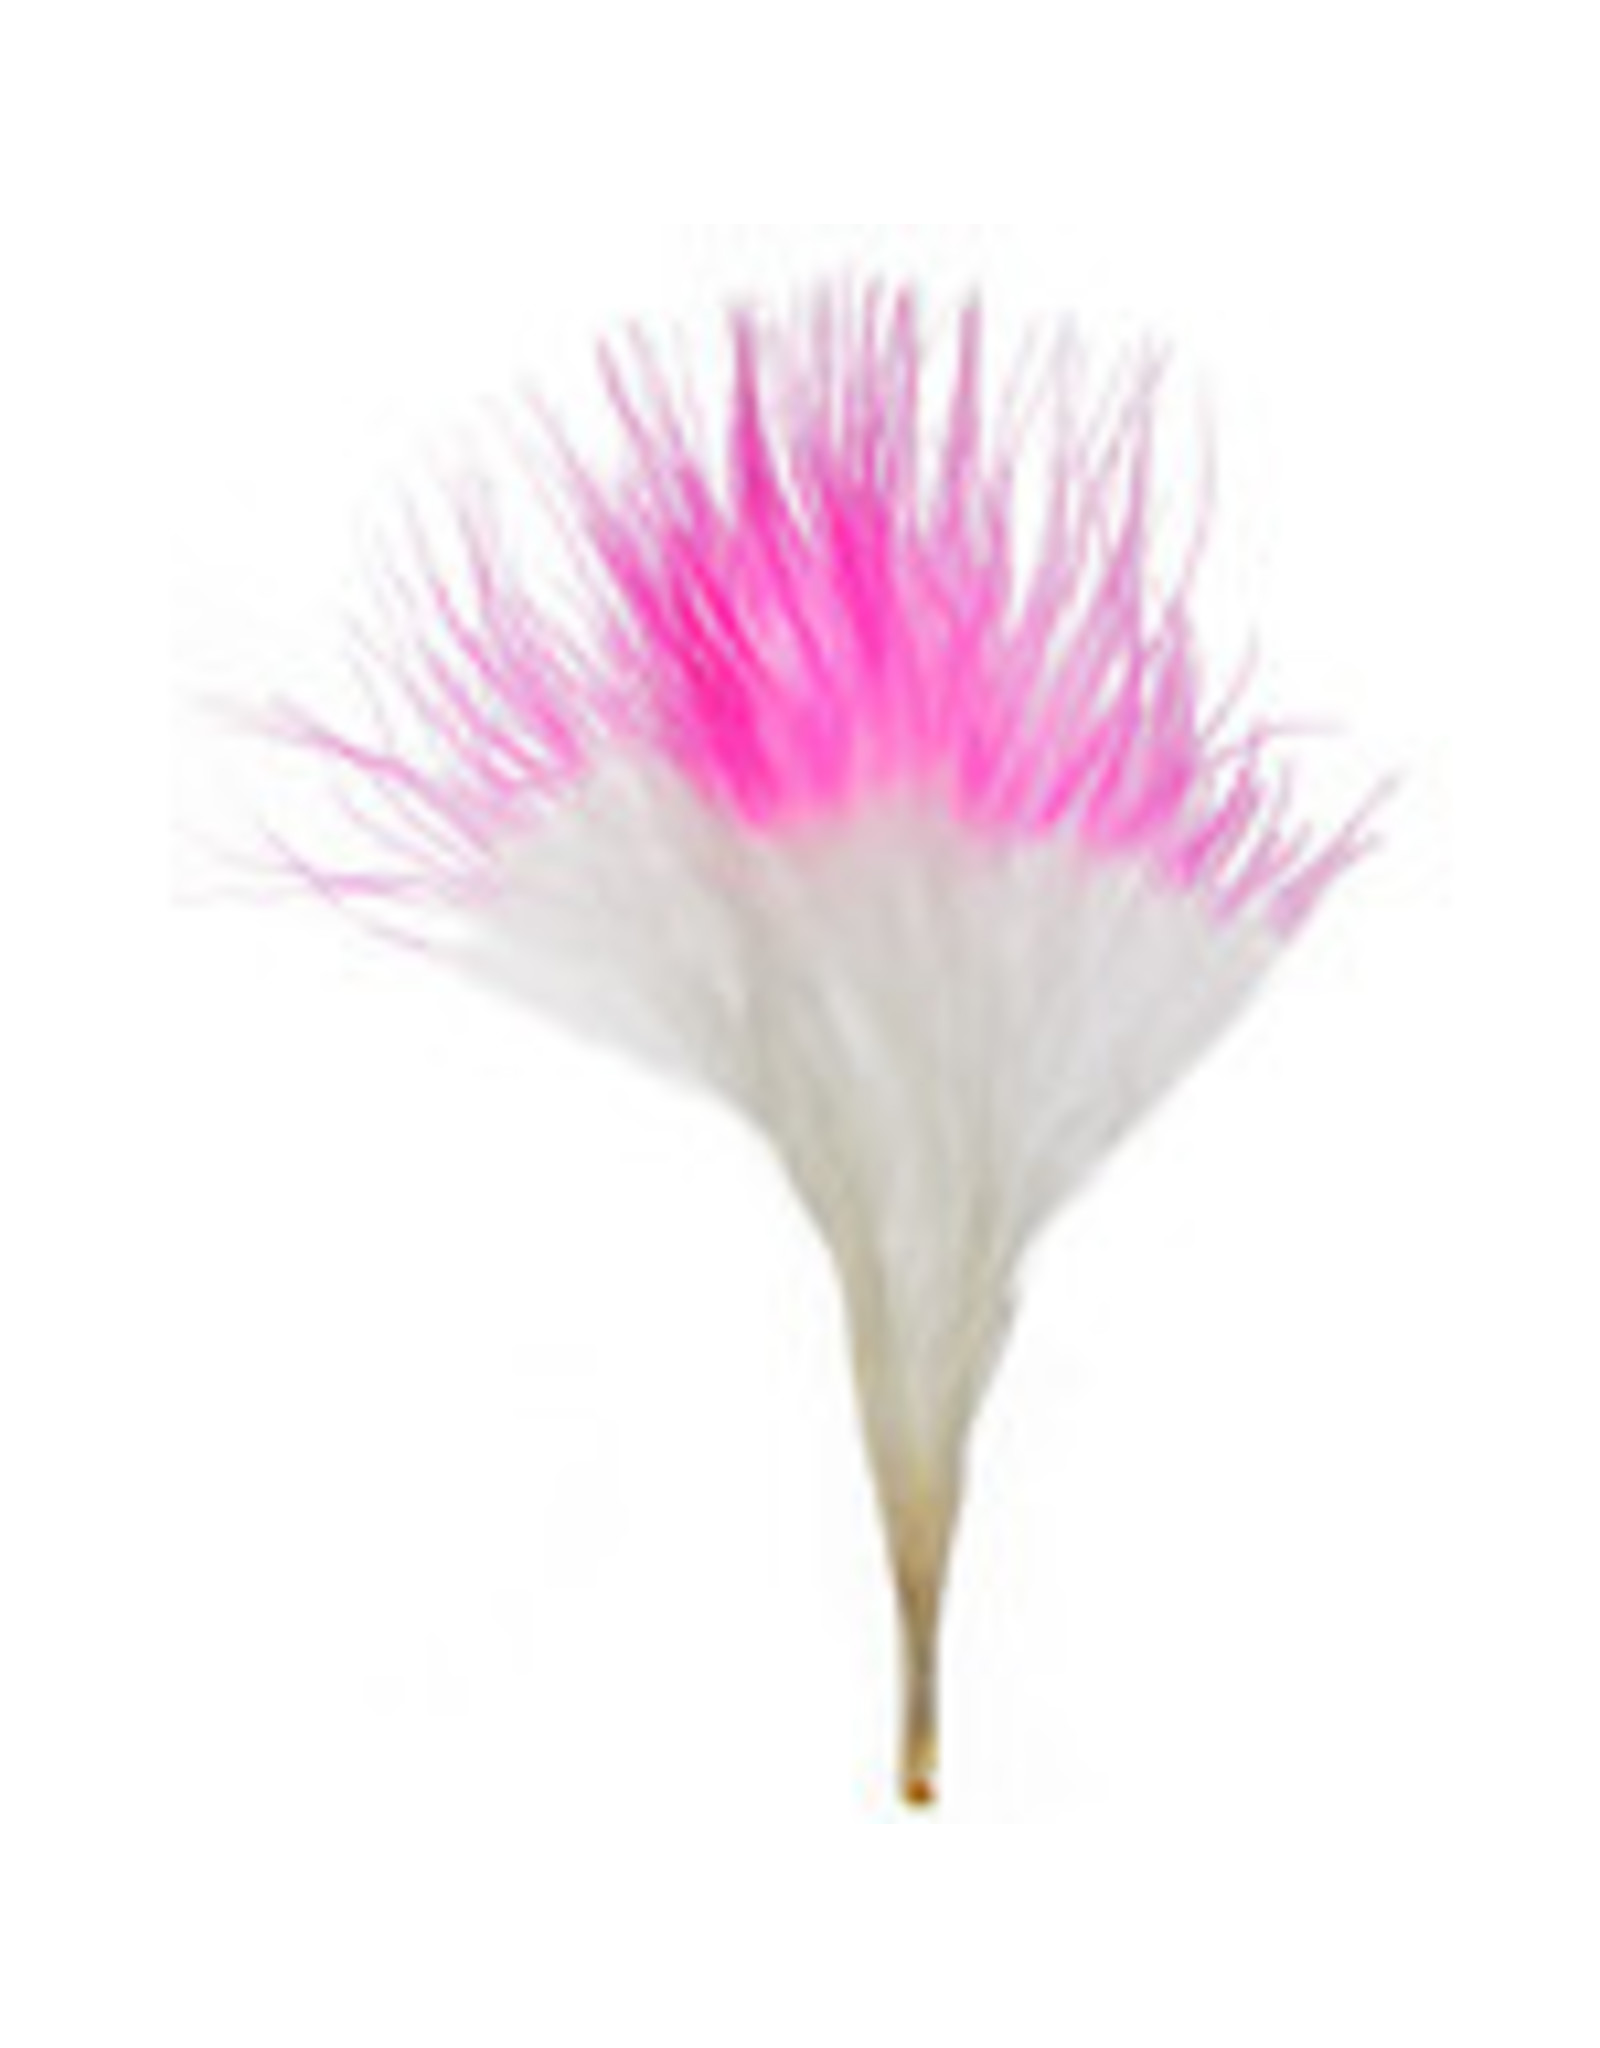 Marabou Feathers 4-6in White Pink Tip  6g